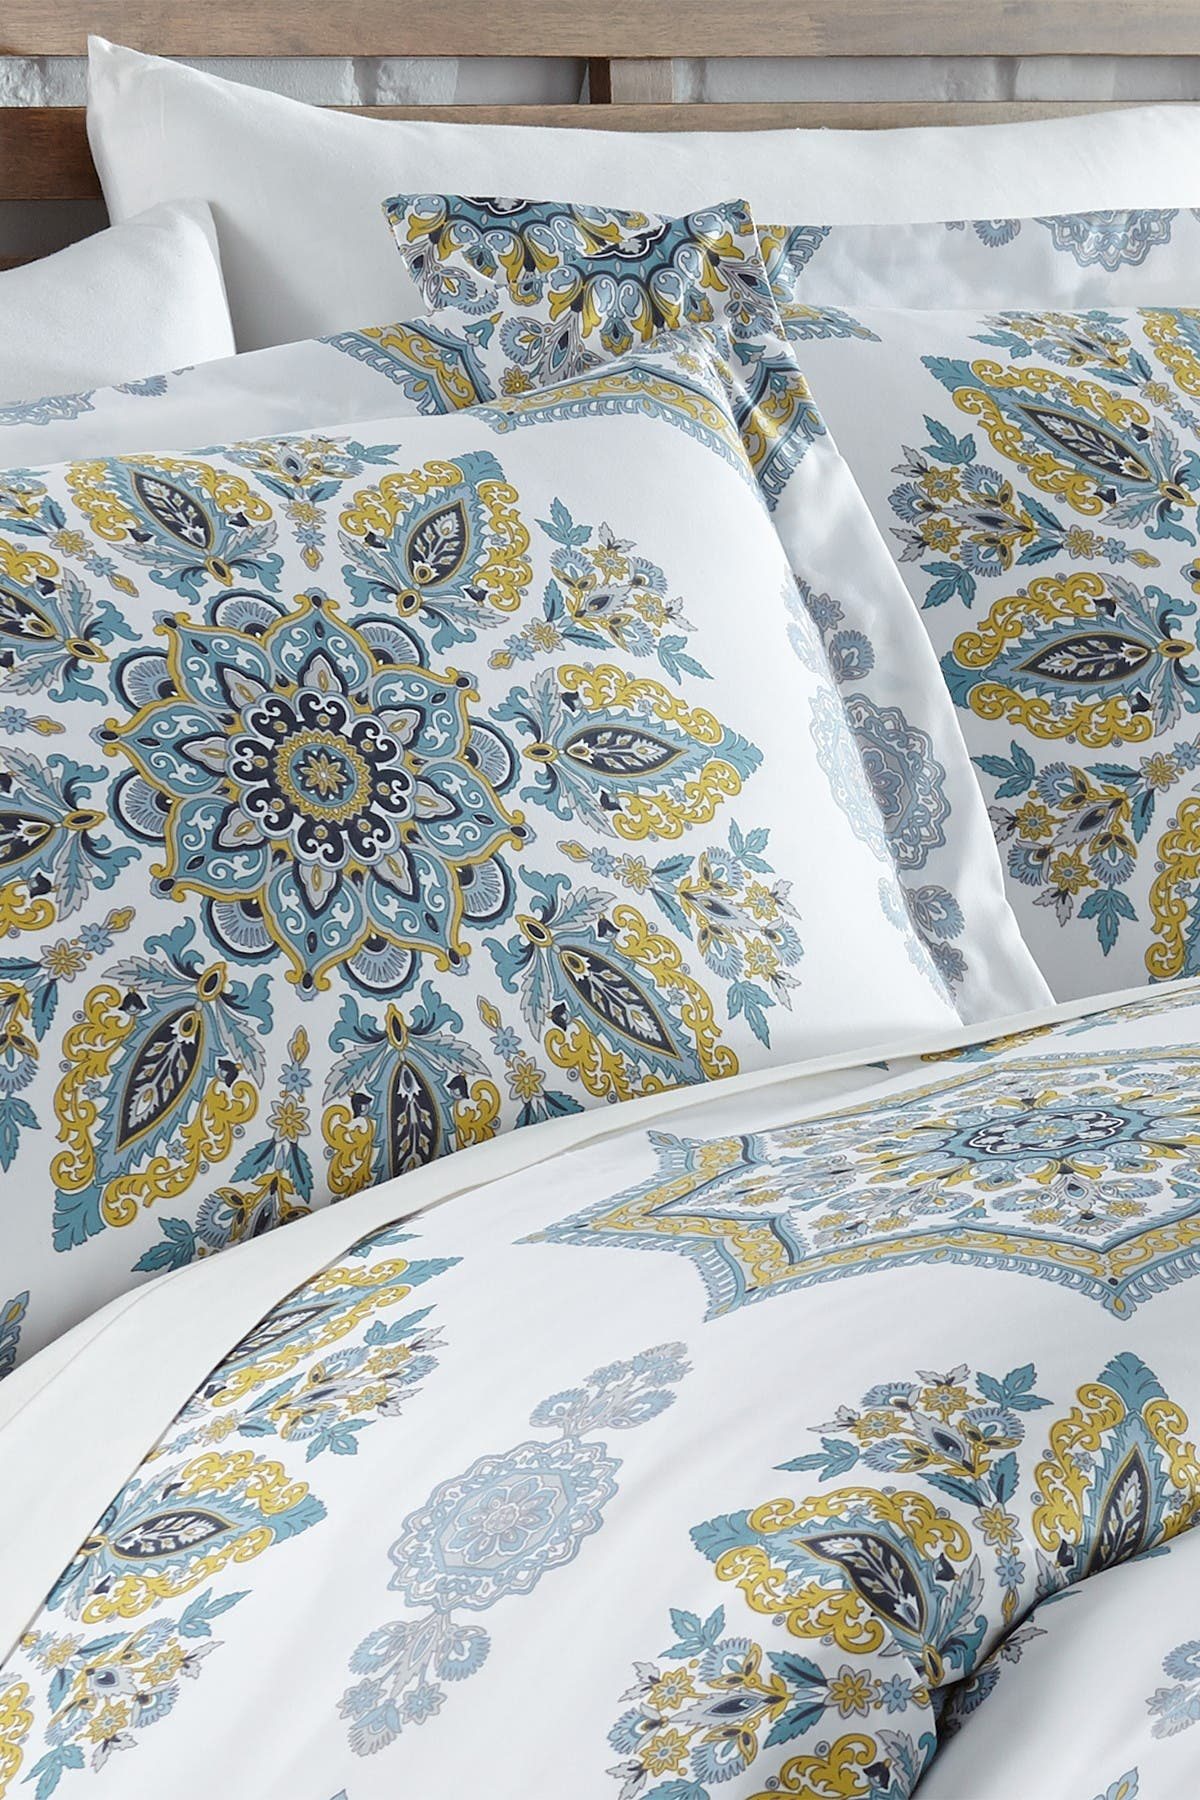 Image of SOUTHSHORE FINE LINENS Full/Queen Luxury Collection Duvet Set - Aqua